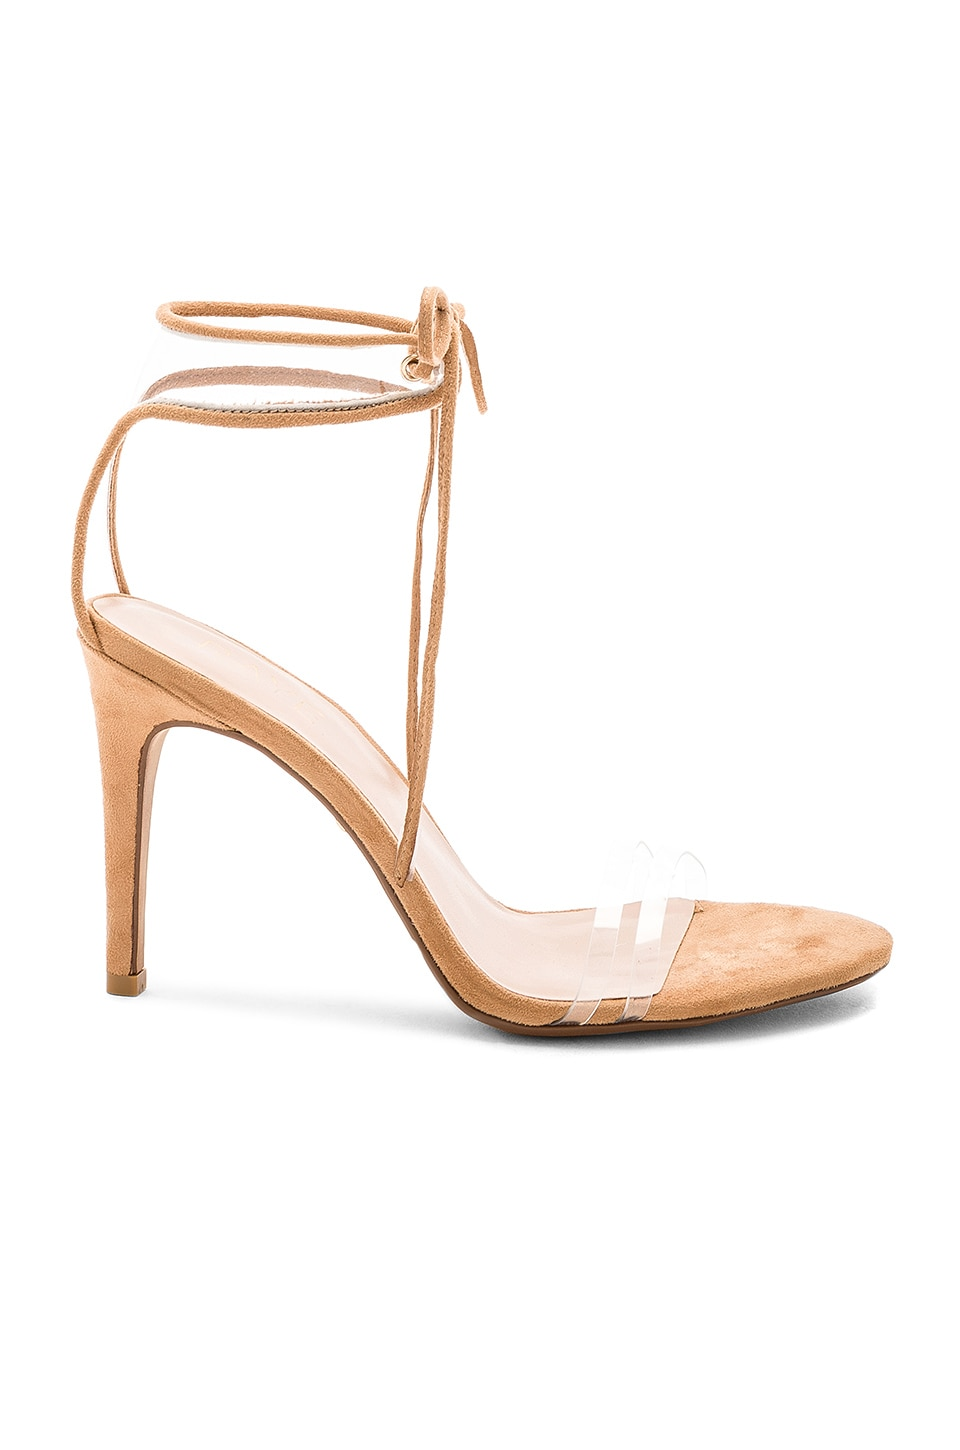 RAYE Daiquiri Heel in Tan